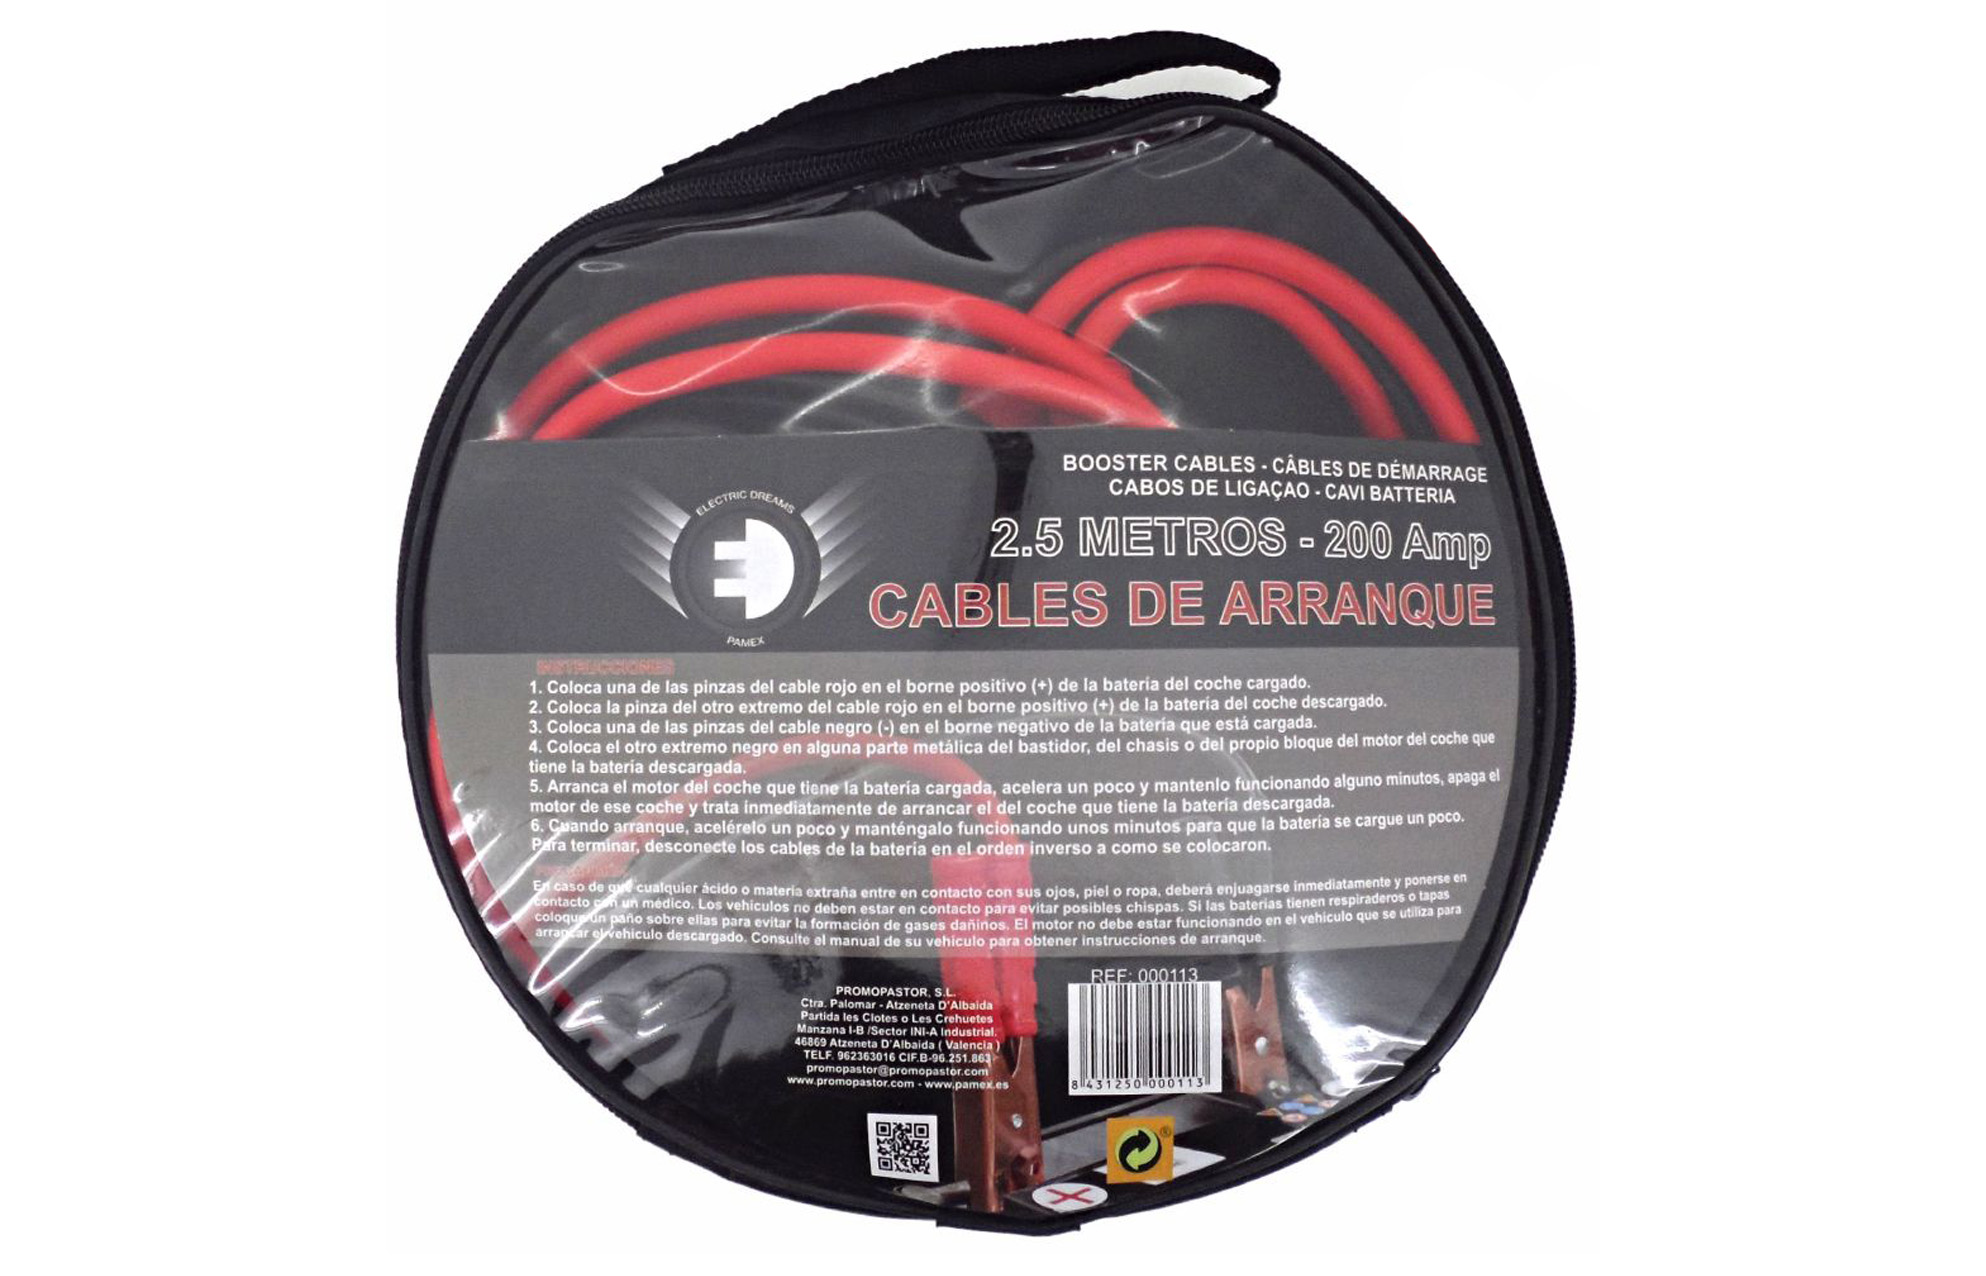 CABLES DE ARRANQUE 2.5 M